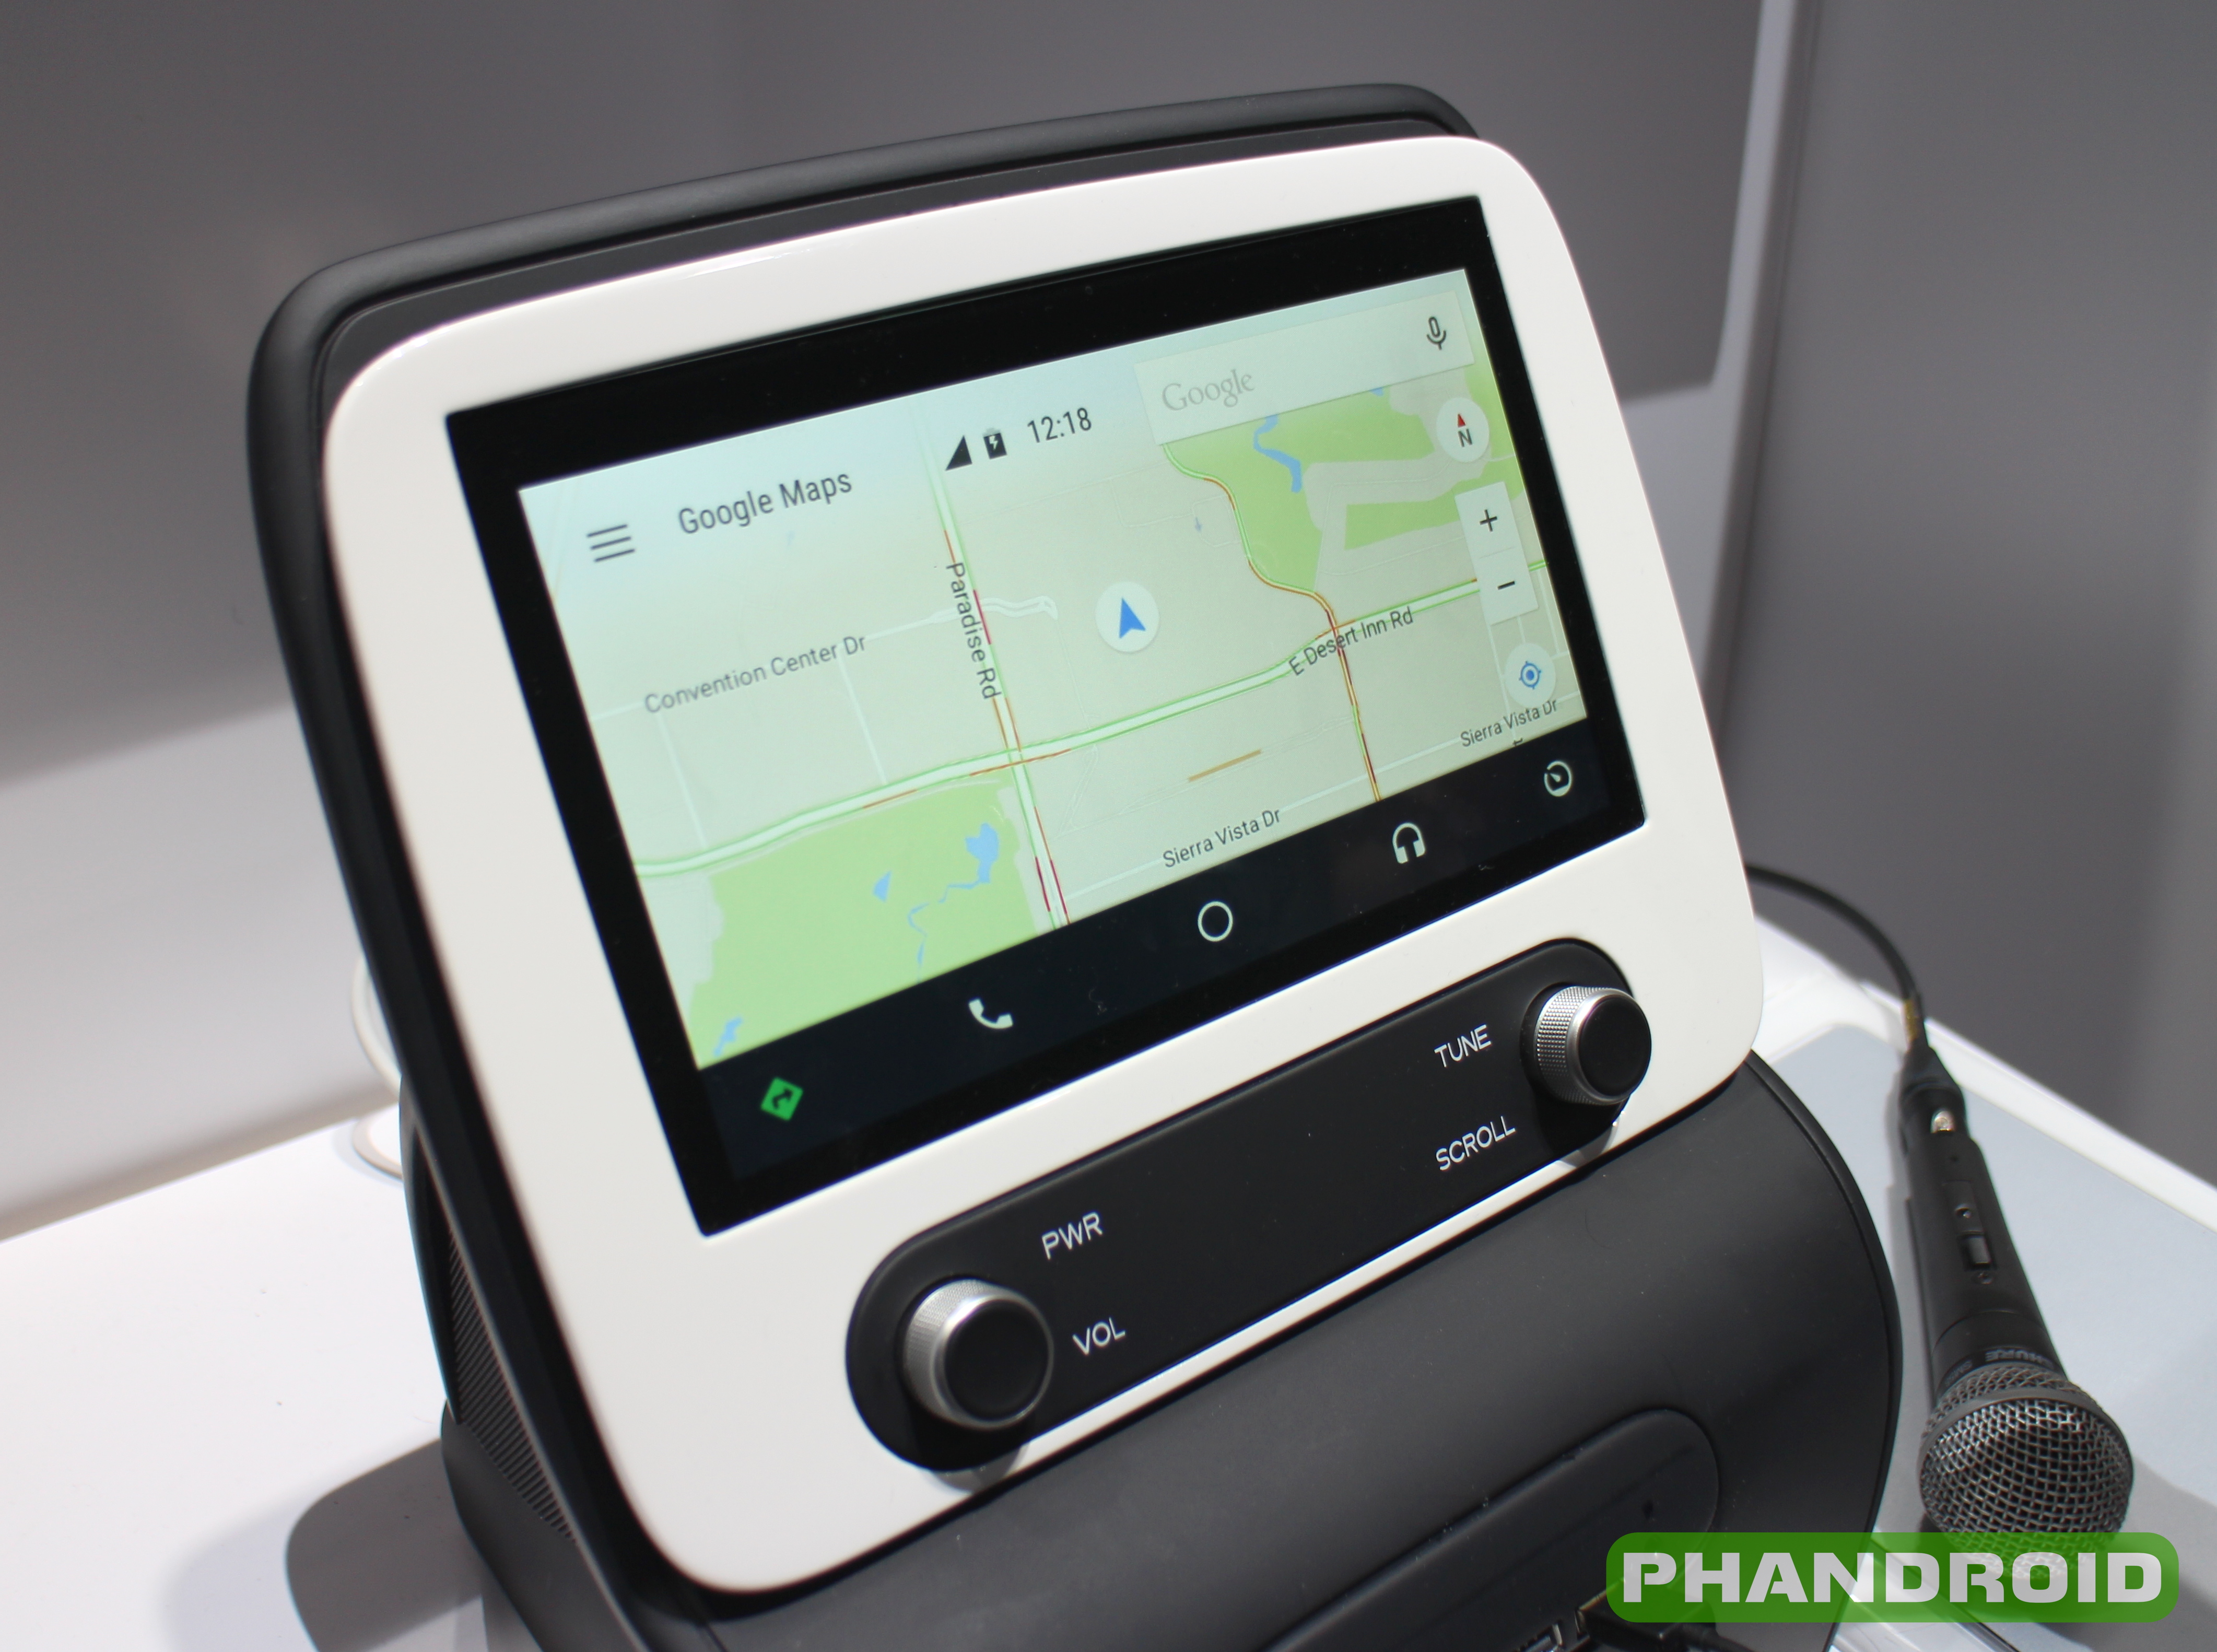 You can buy Pioneer's Android Auto units right now